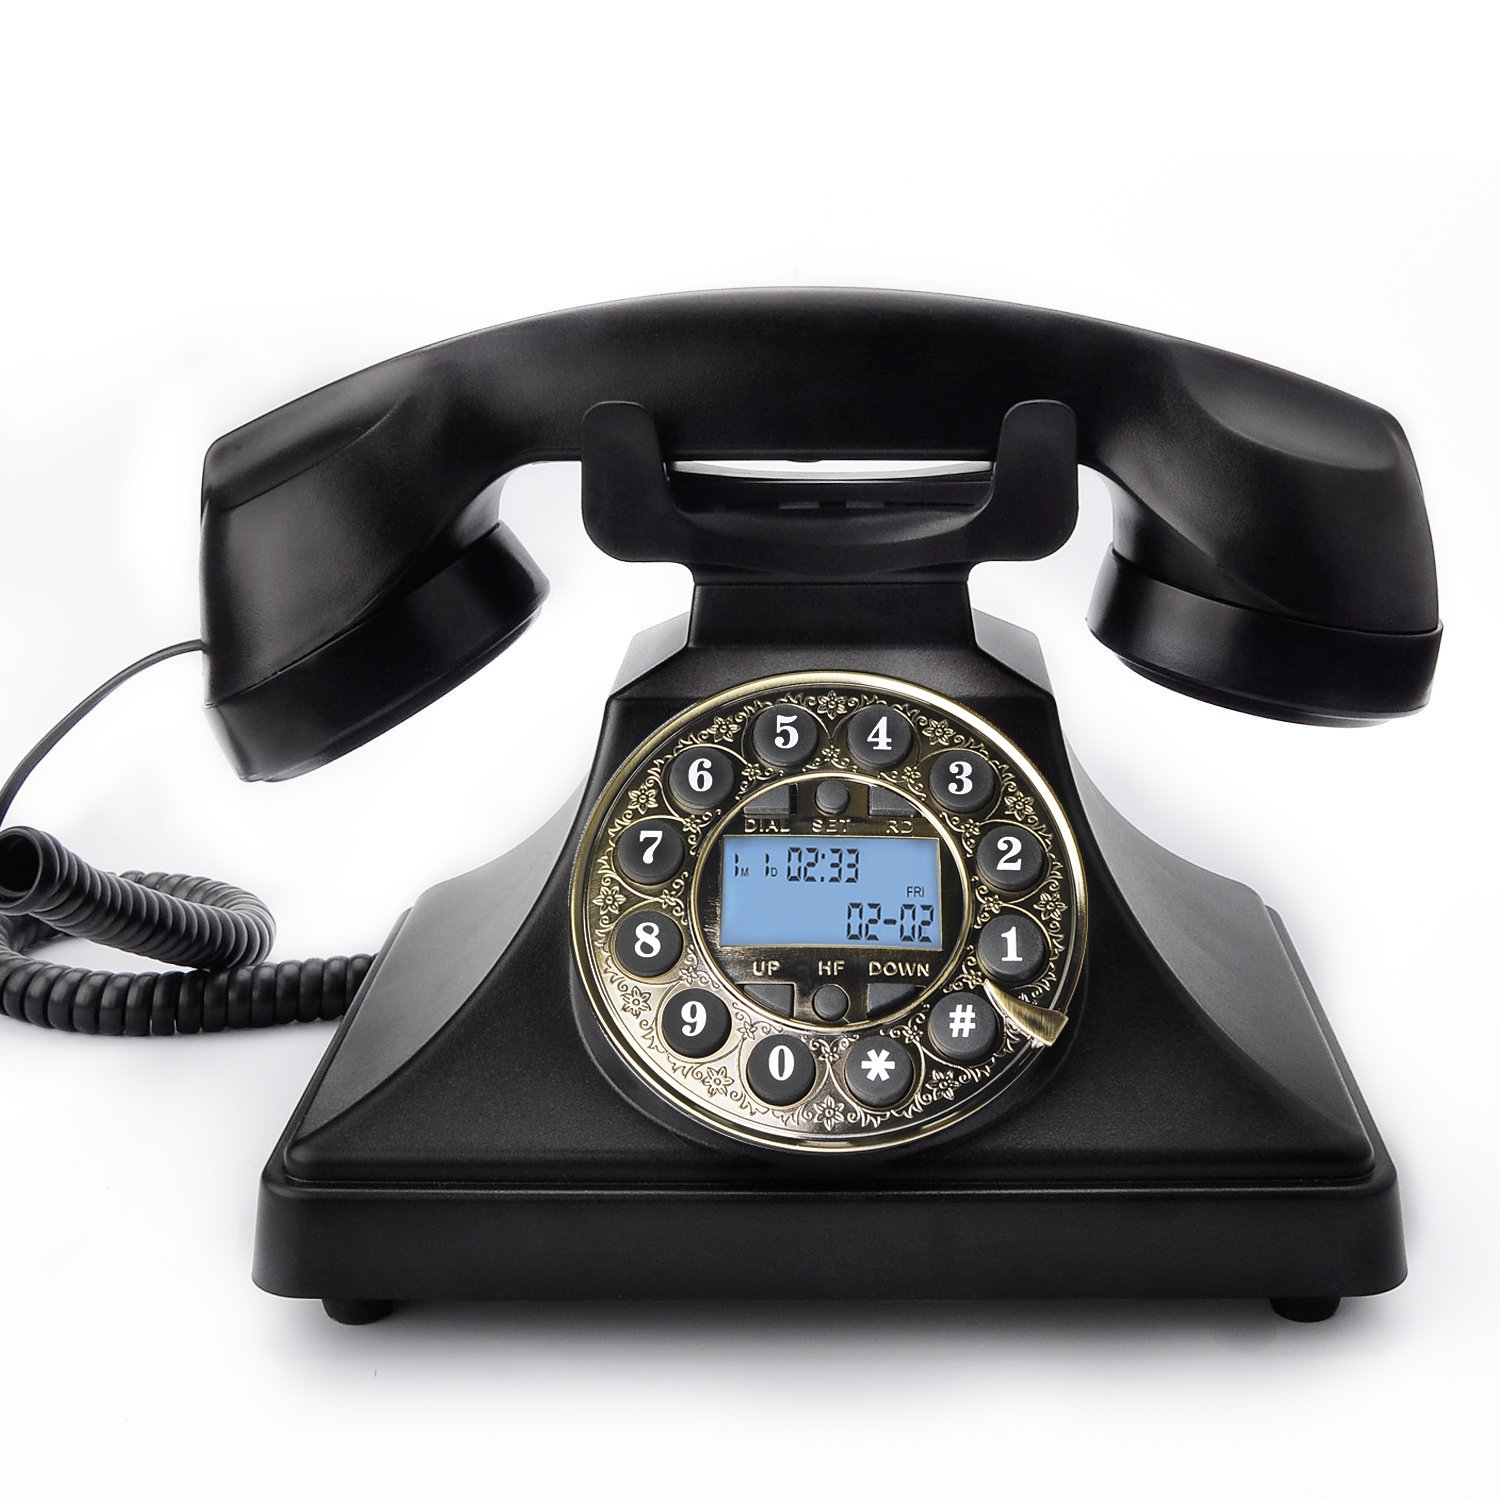 Classic Style Button Dial Corded Phone